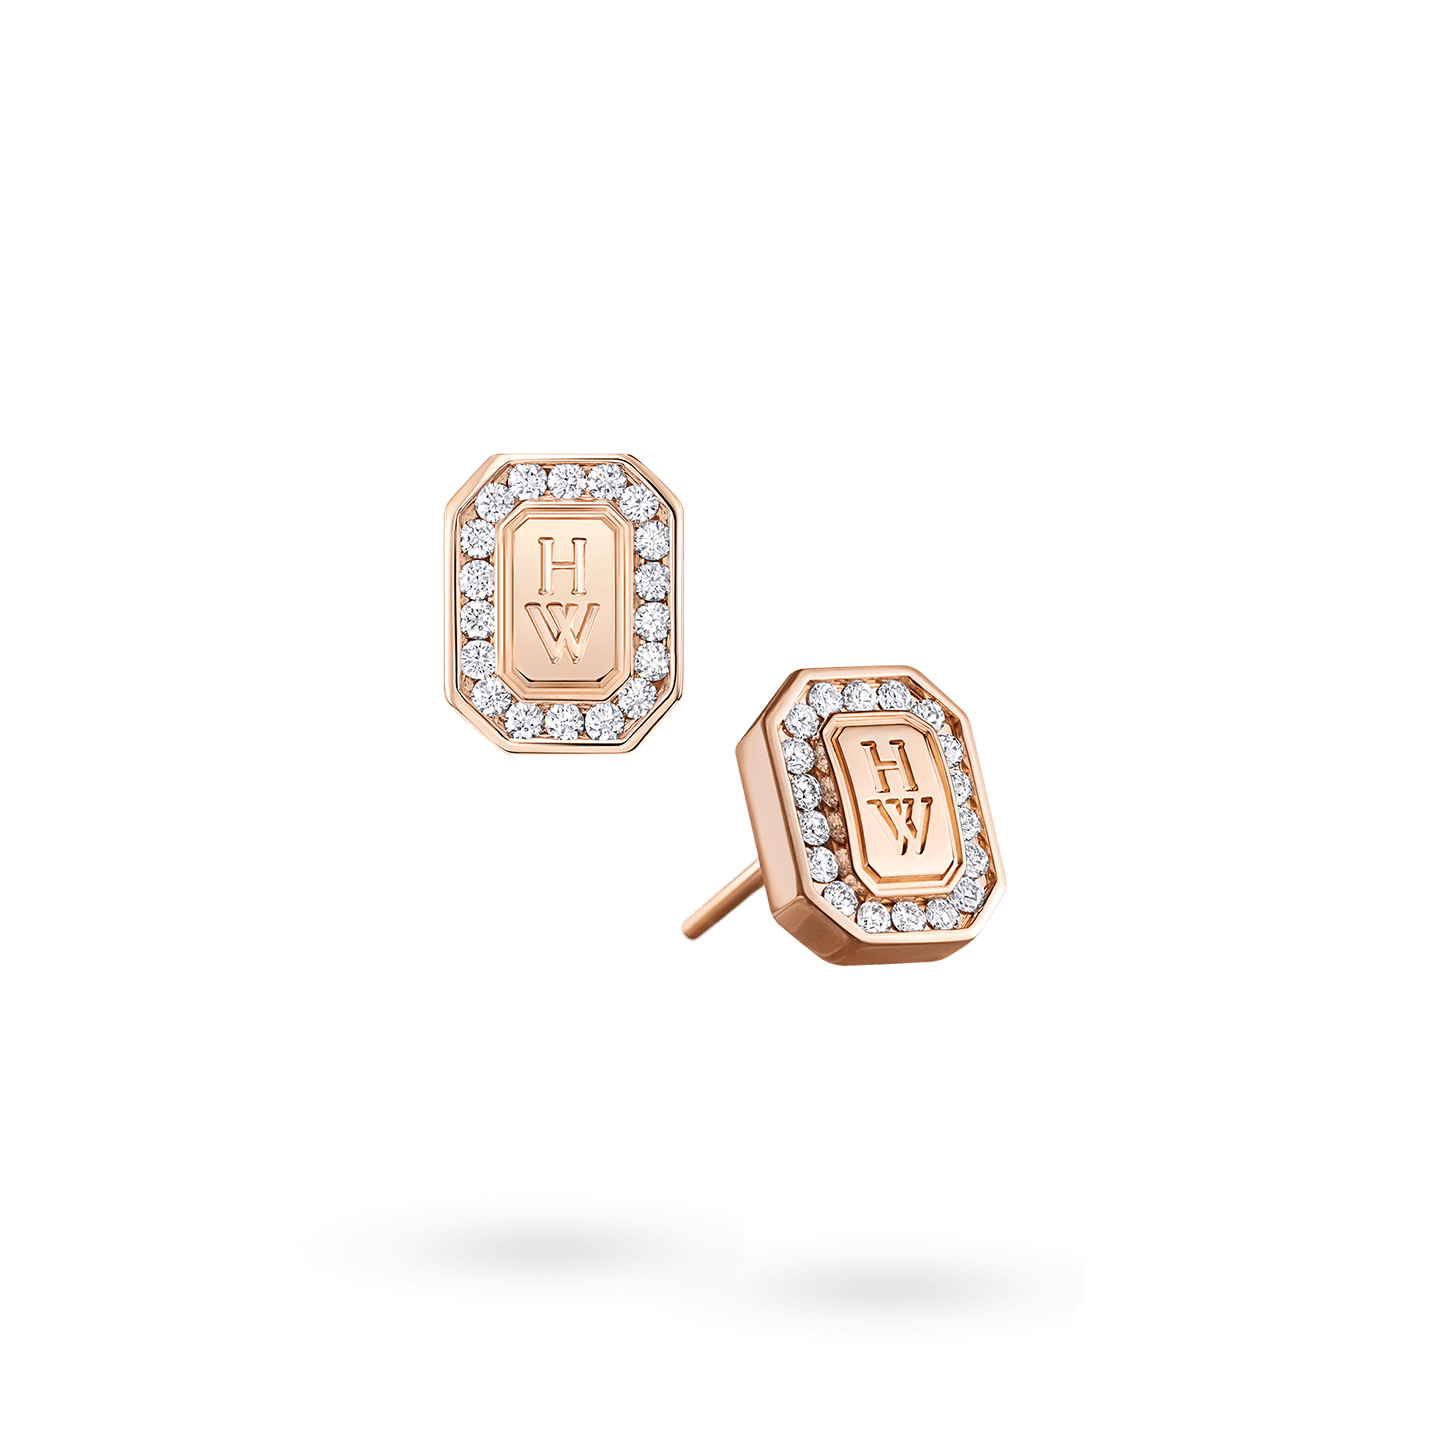 HW Logo Rose Gold Diamond Earrings, Product Image 2